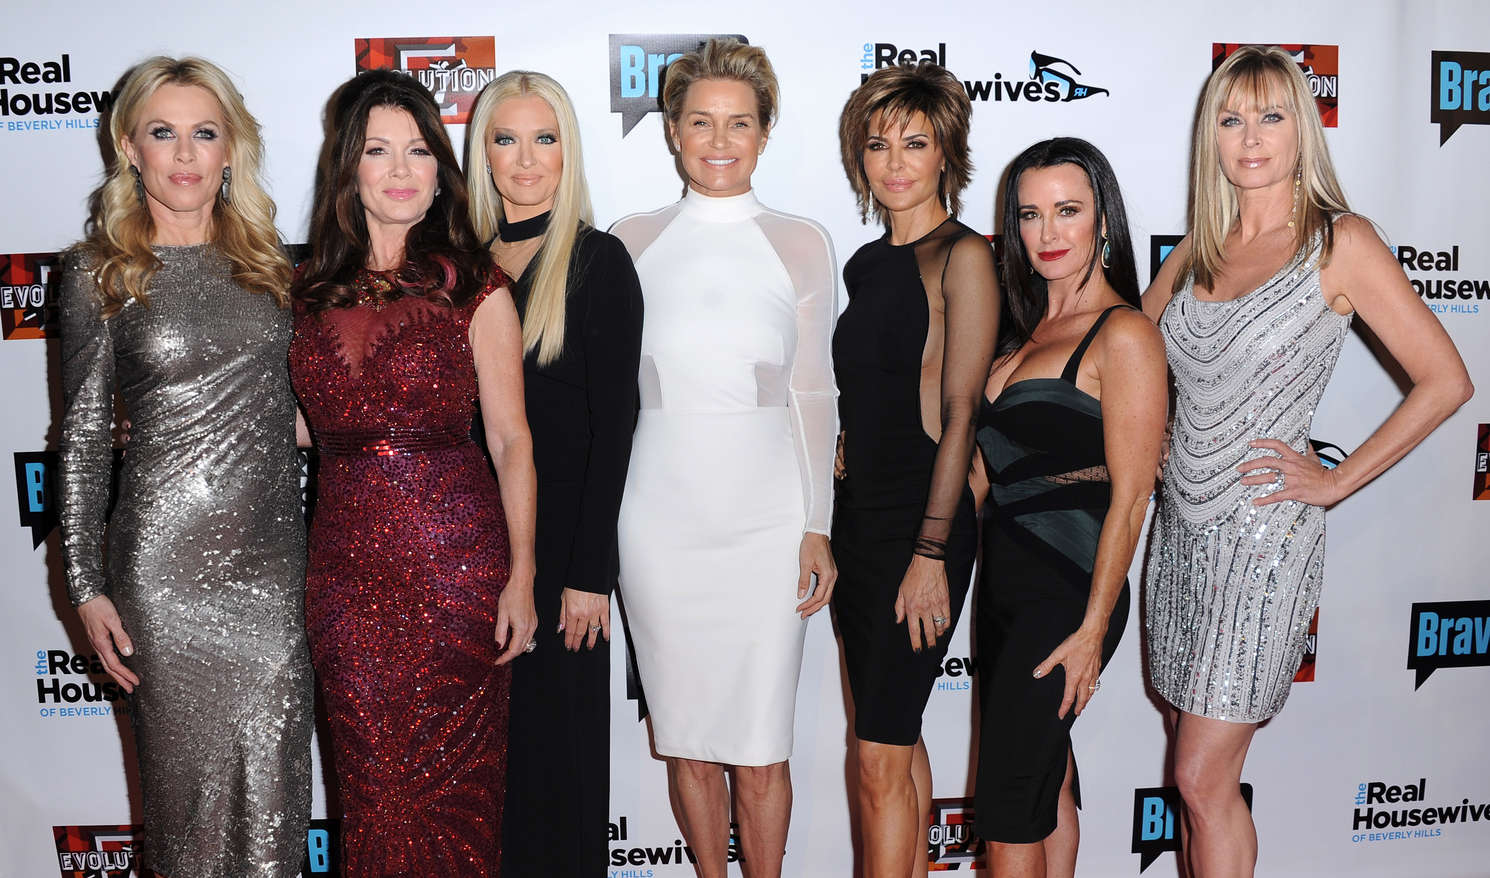 Yolanda Foster The Real Housewives Of Beverly Hills Season Premiere Party in Hollywood